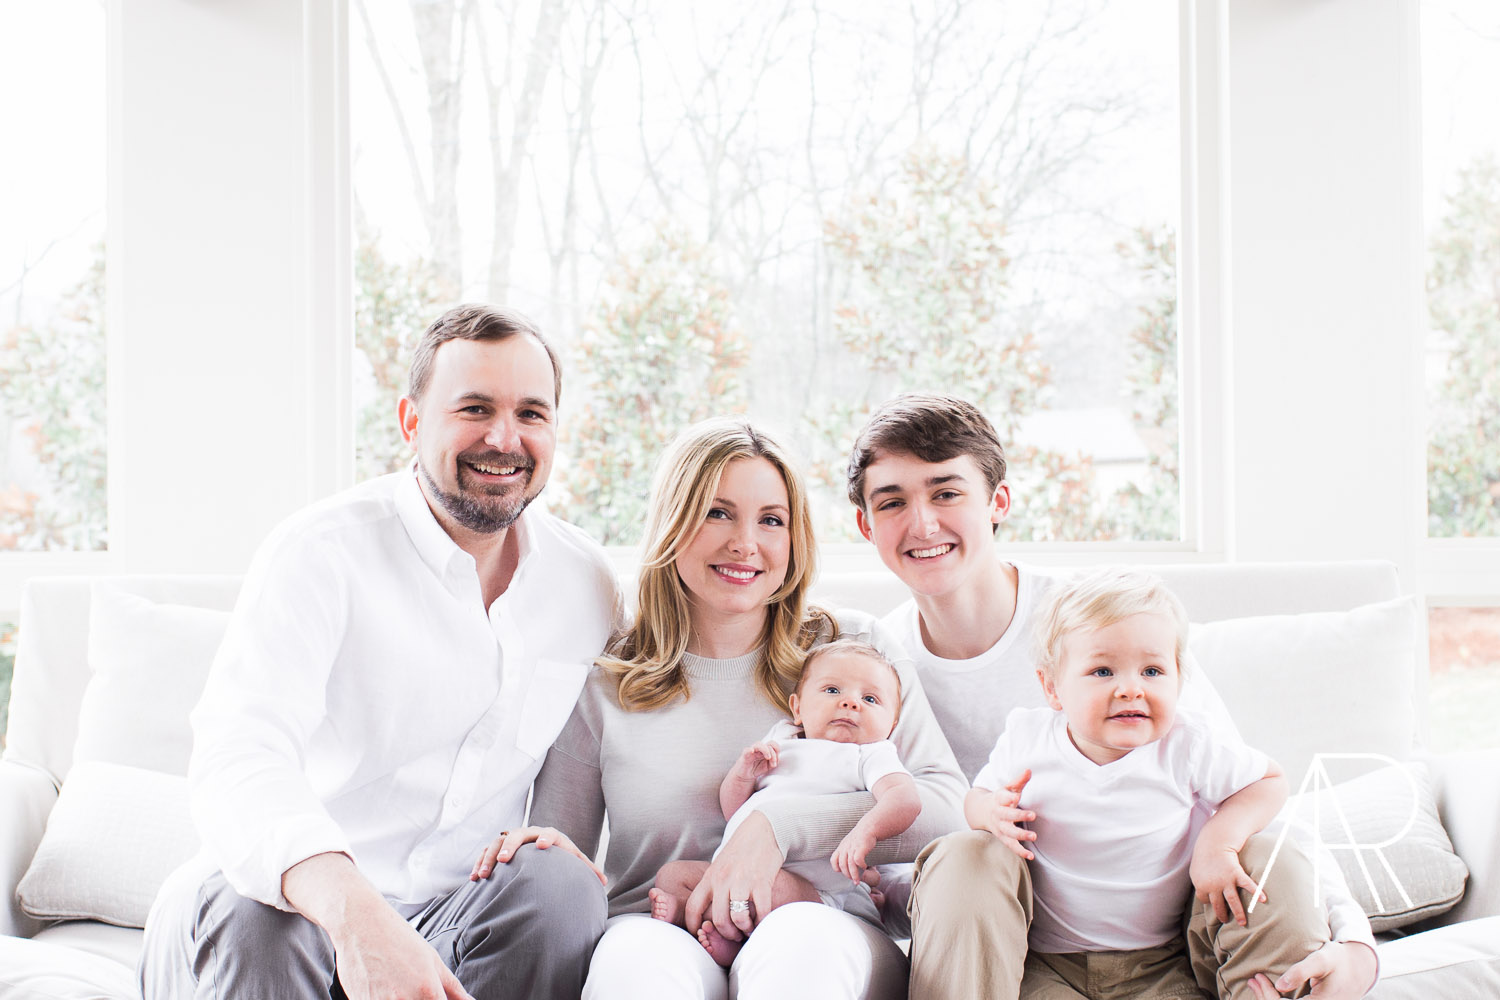 ©AlyssaRosenheck2015 Nashville Designer and Family Photography by Alyssa Rosenheck Photography